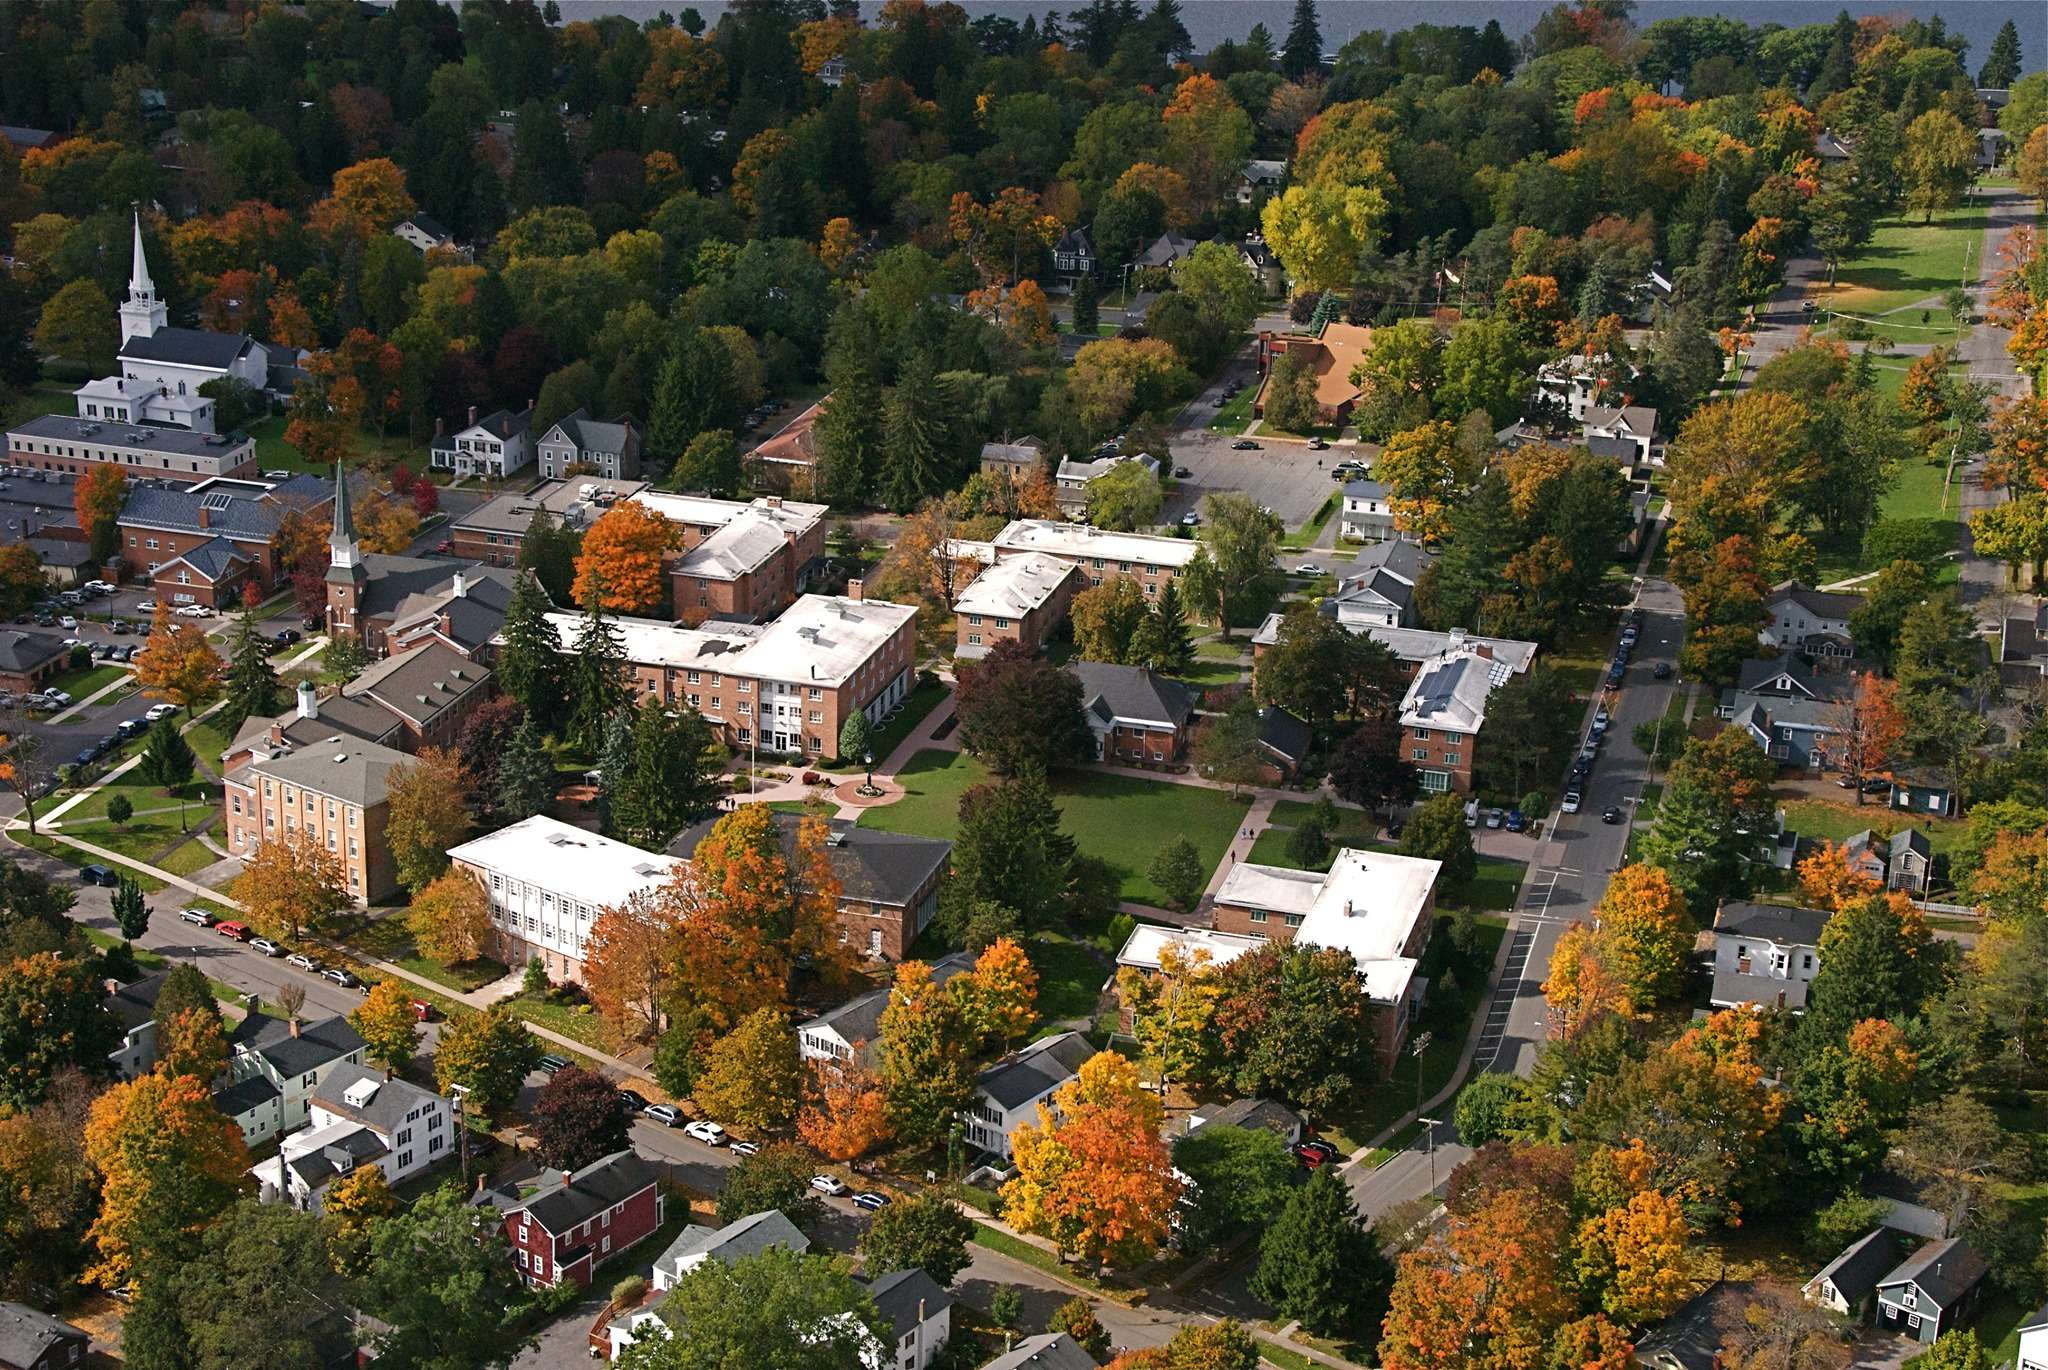 Cazenovia College's Main Campus